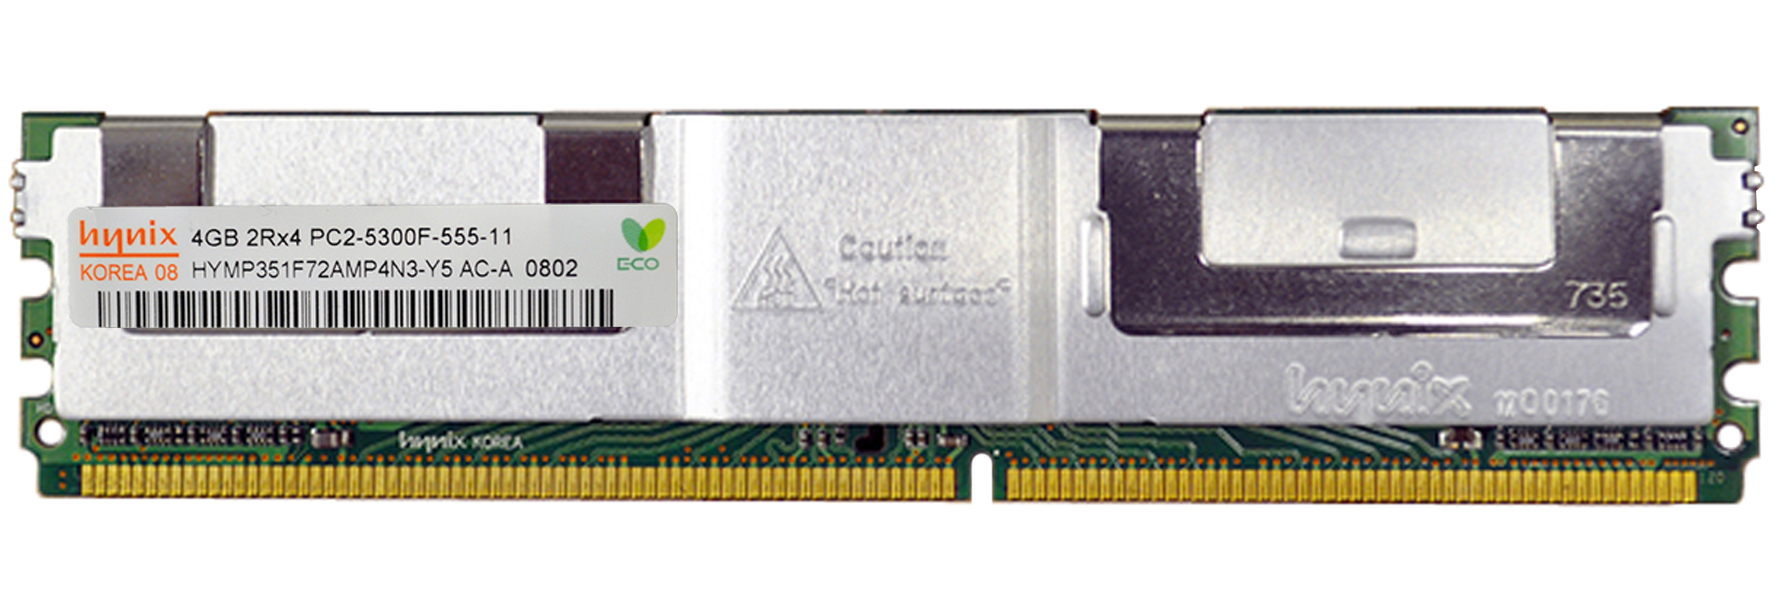 HYMP351F72AMP4N3-Y5 Hynix 4GB PC2-5300 DDR2-667MHz ECC Fully Buffered CL5 240-Pin DIMM Dual Rank Memory Module